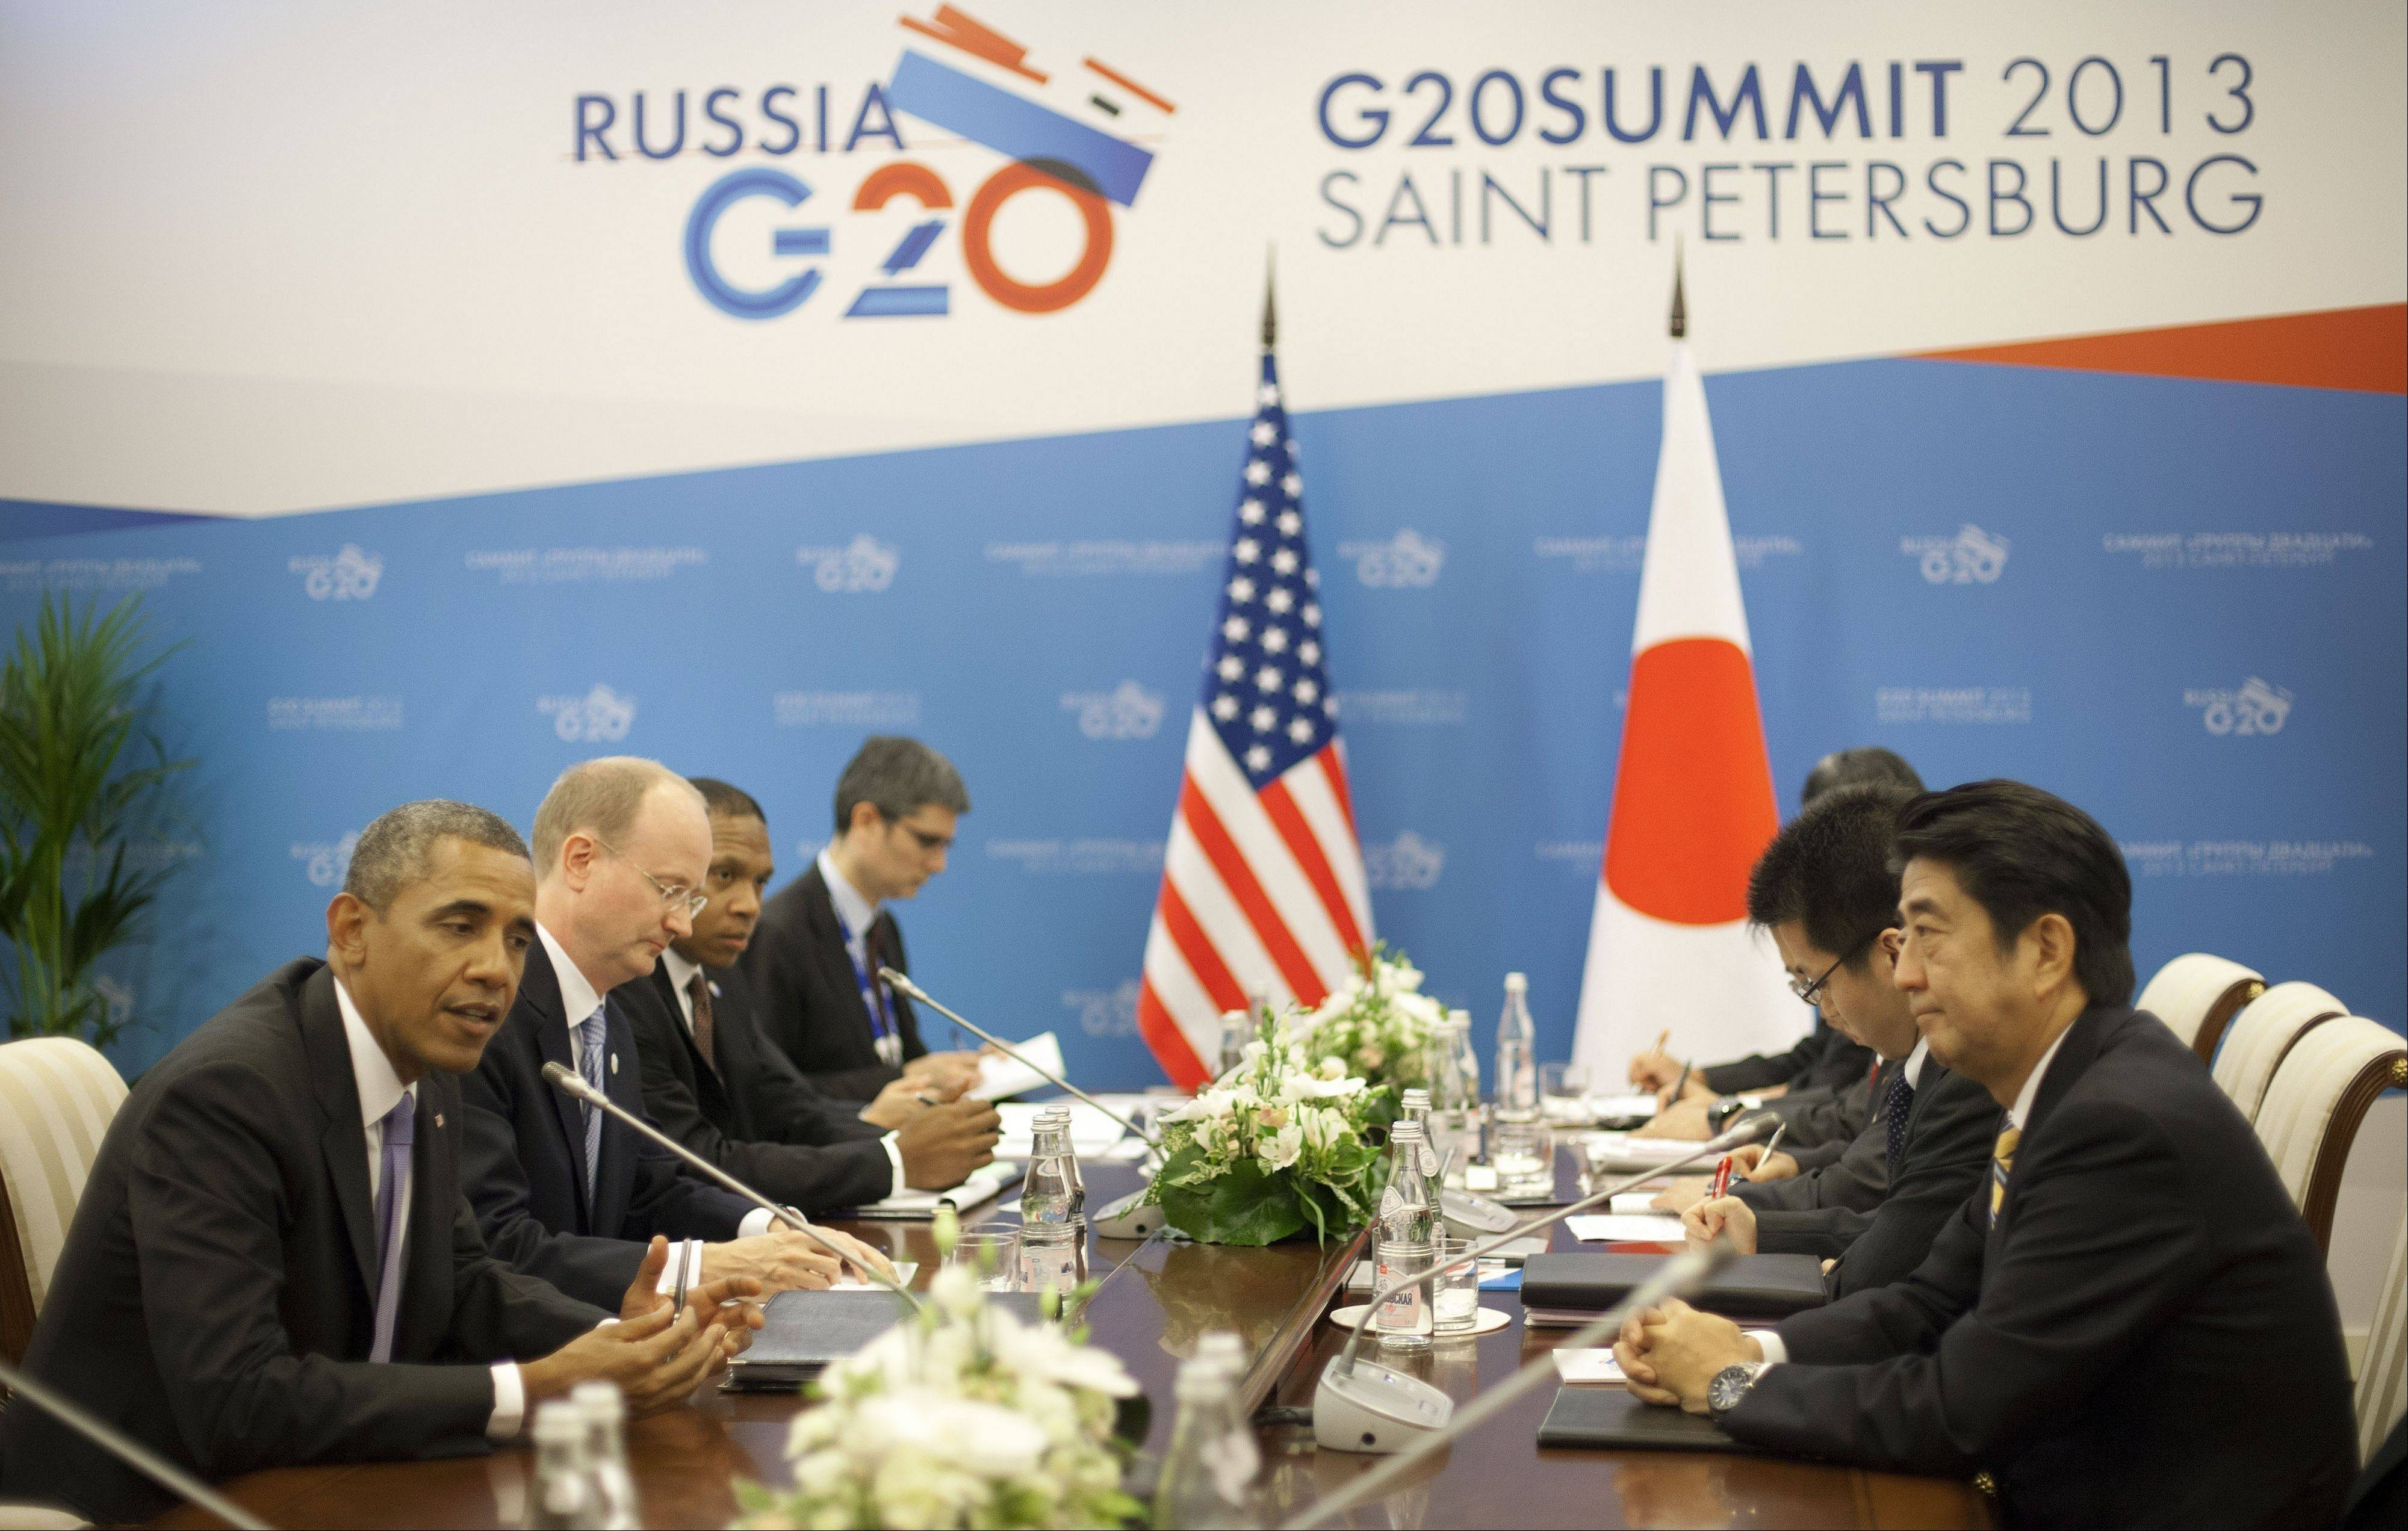 G-20 summit leaders face a divided global economy